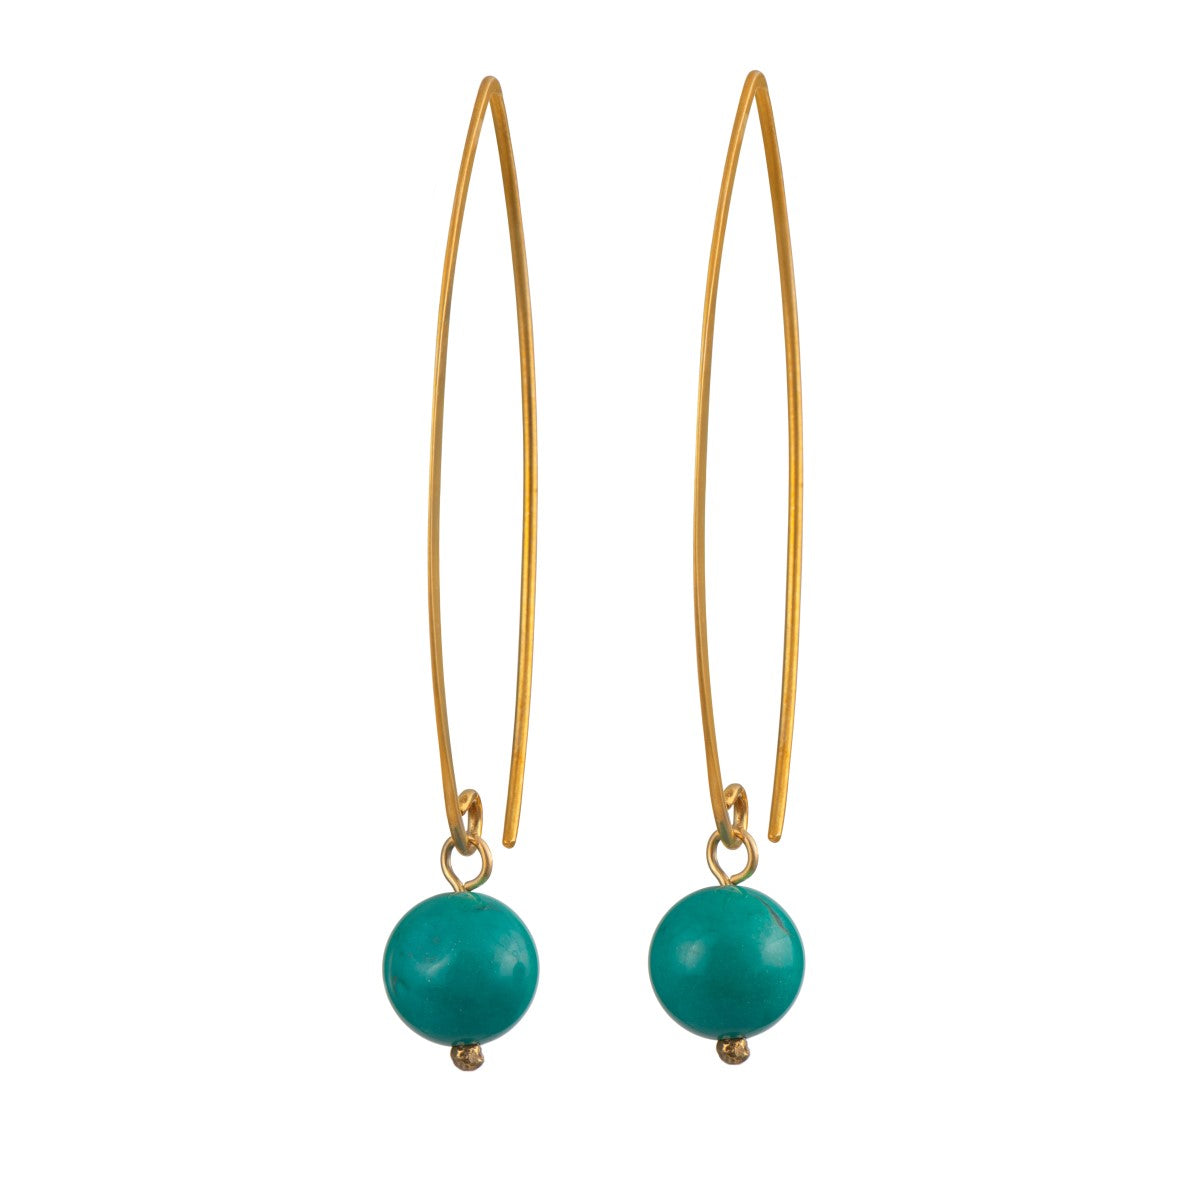 Gold Plated Long Silver Earrings with a Turquoise Drop